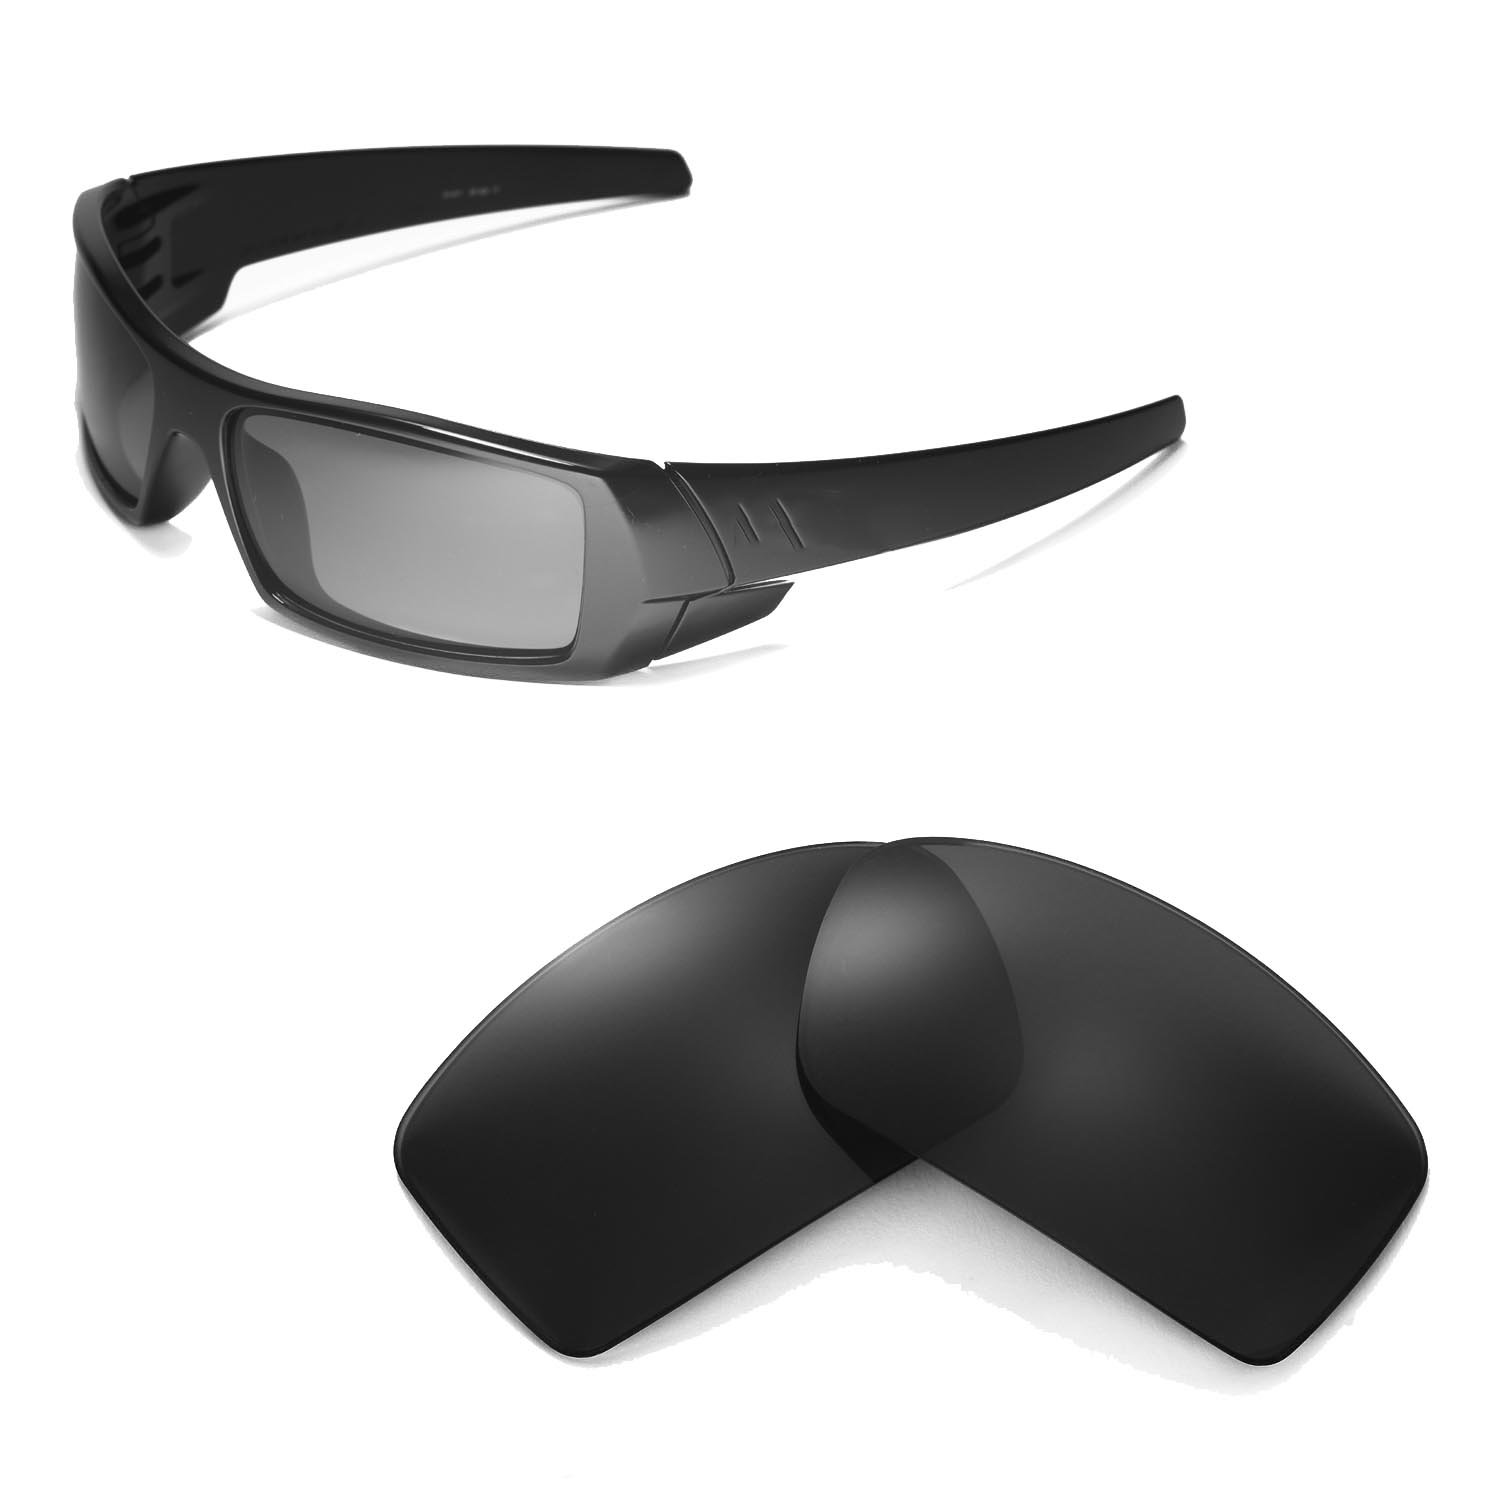 Walleva Replacement Lenses for Oakley Gascan Sunglasses - Multiple Options Available (Black - Polarized) by Walleva